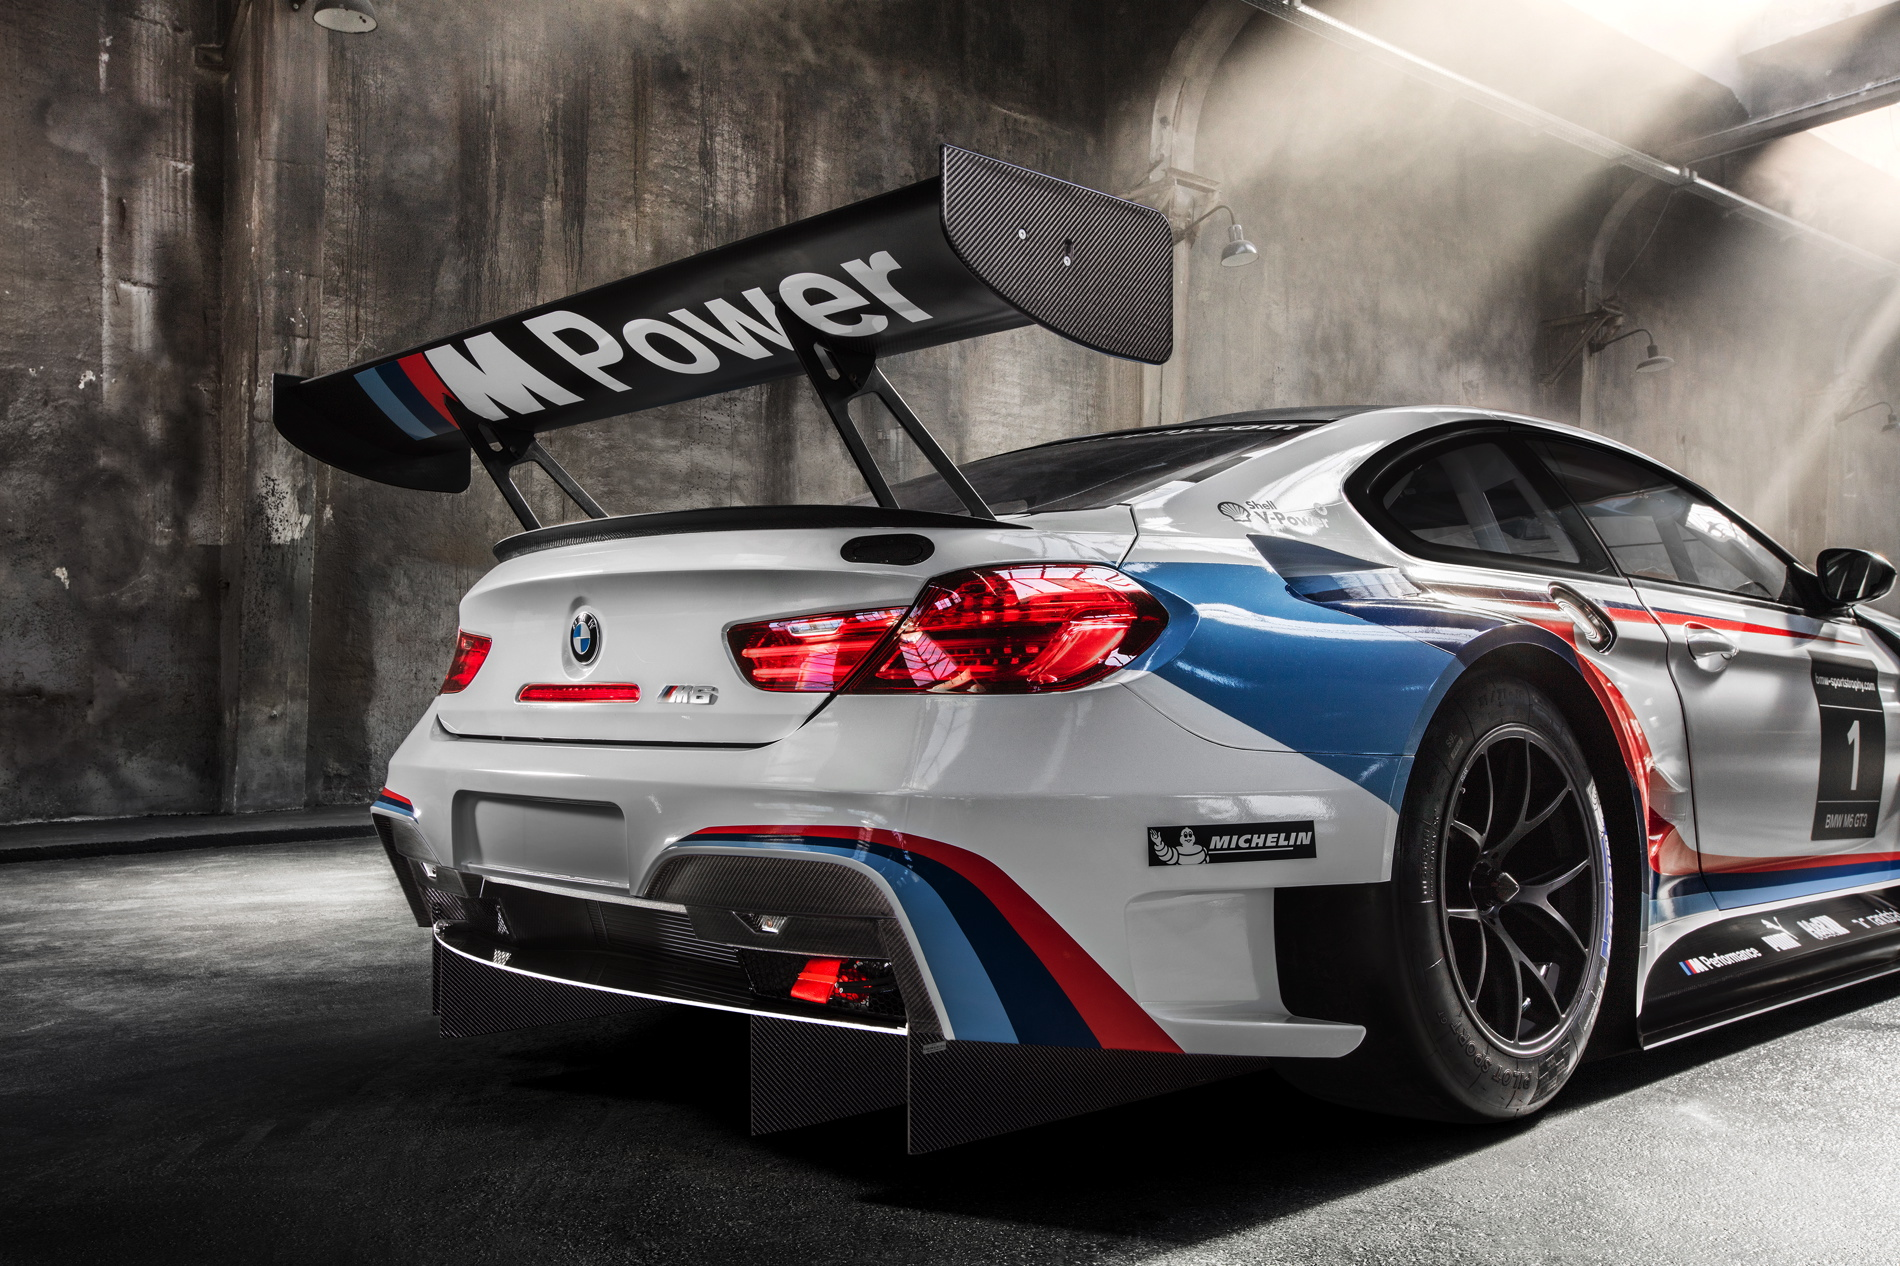 Bmw M6 Gtlm With Bmw Team Rll To Compete In The Imsa